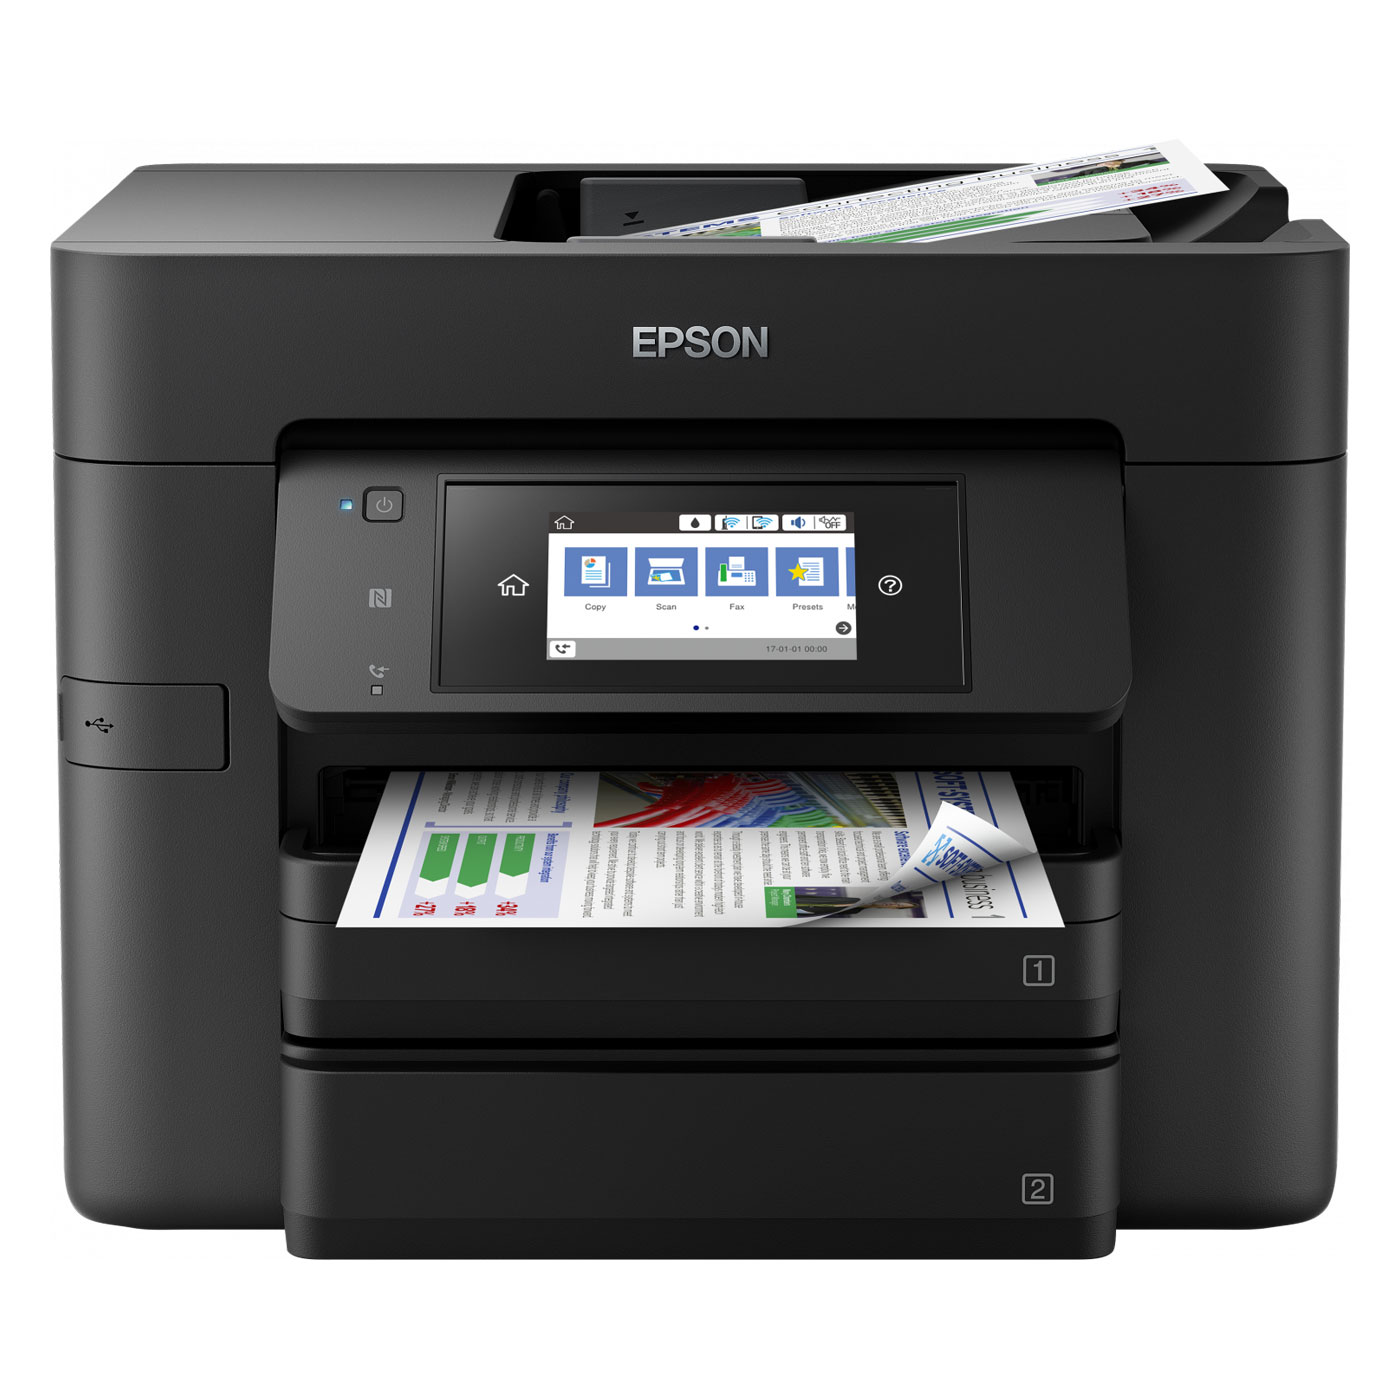 epson workforce pro wf 4740dtwf imprimante multifonction epson sur. Black Bedroom Furniture Sets. Home Design Ideas